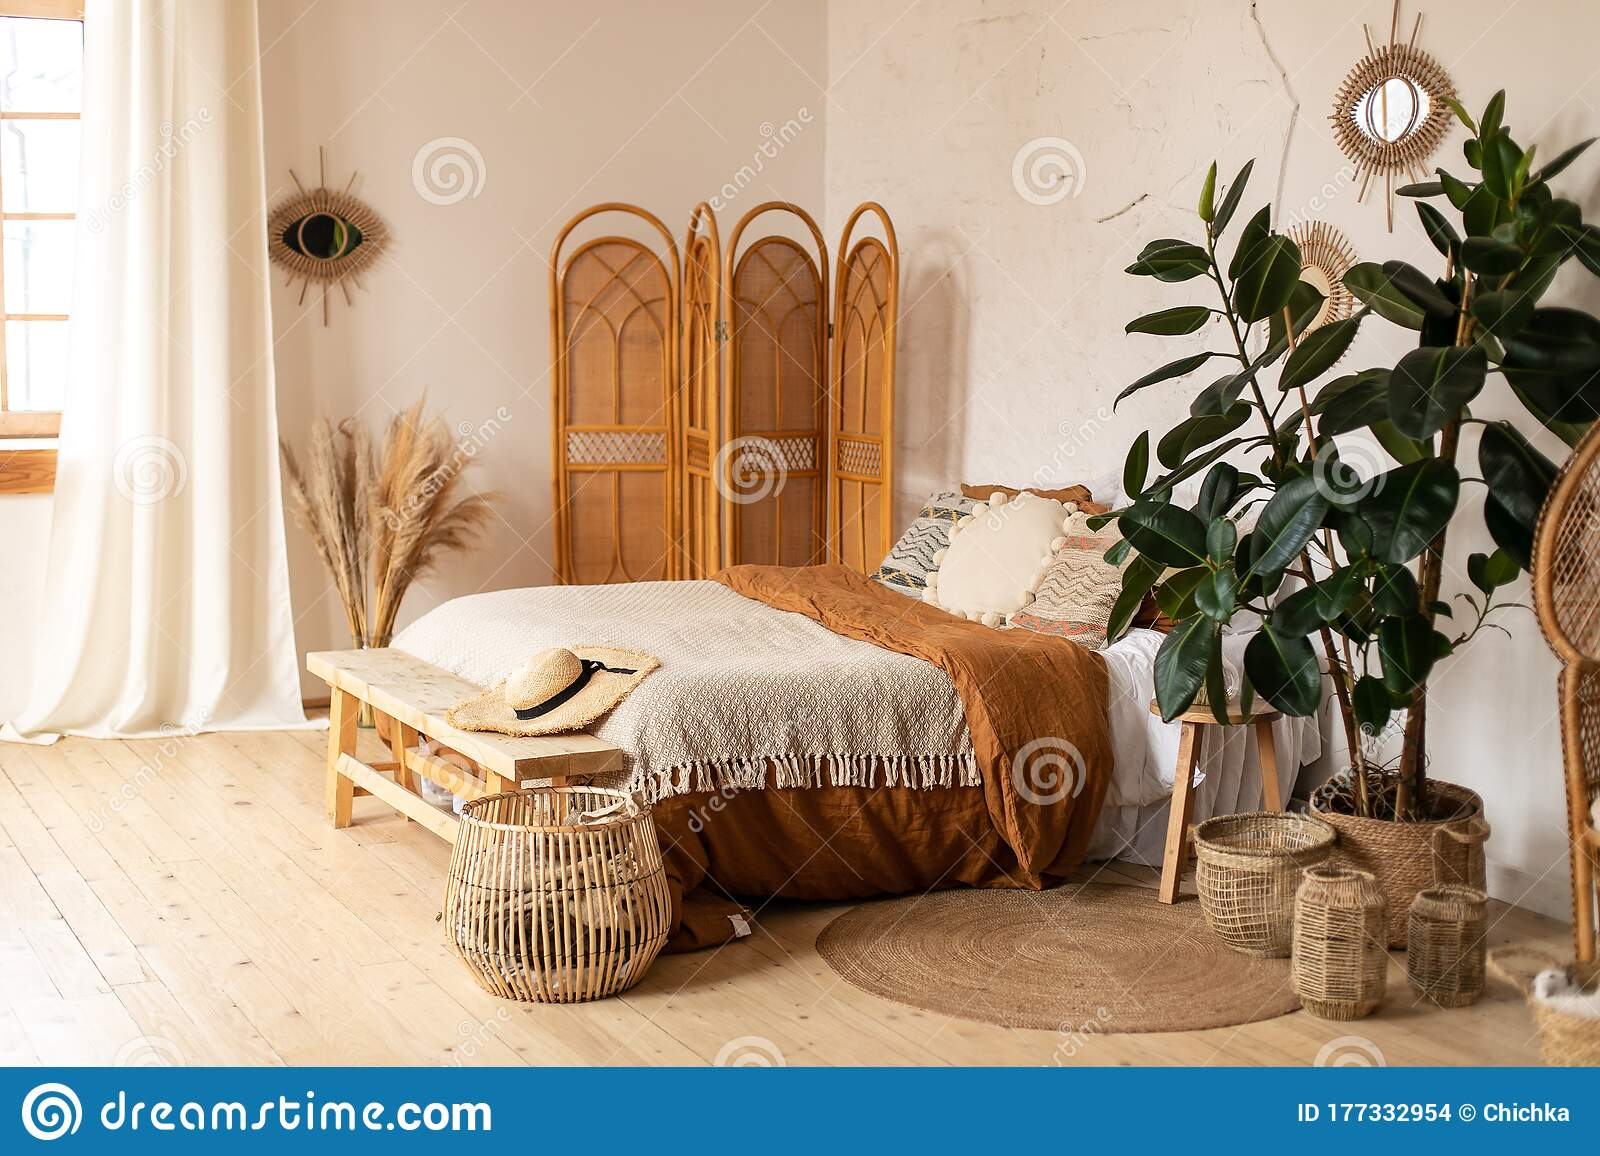 Modern Home Interior Design White And Beige Blankets On Comfortable Bed In Boho Bedroom Interior Textured Walls Wooden Floor Stock Photo Image Of Background Interior 177332954